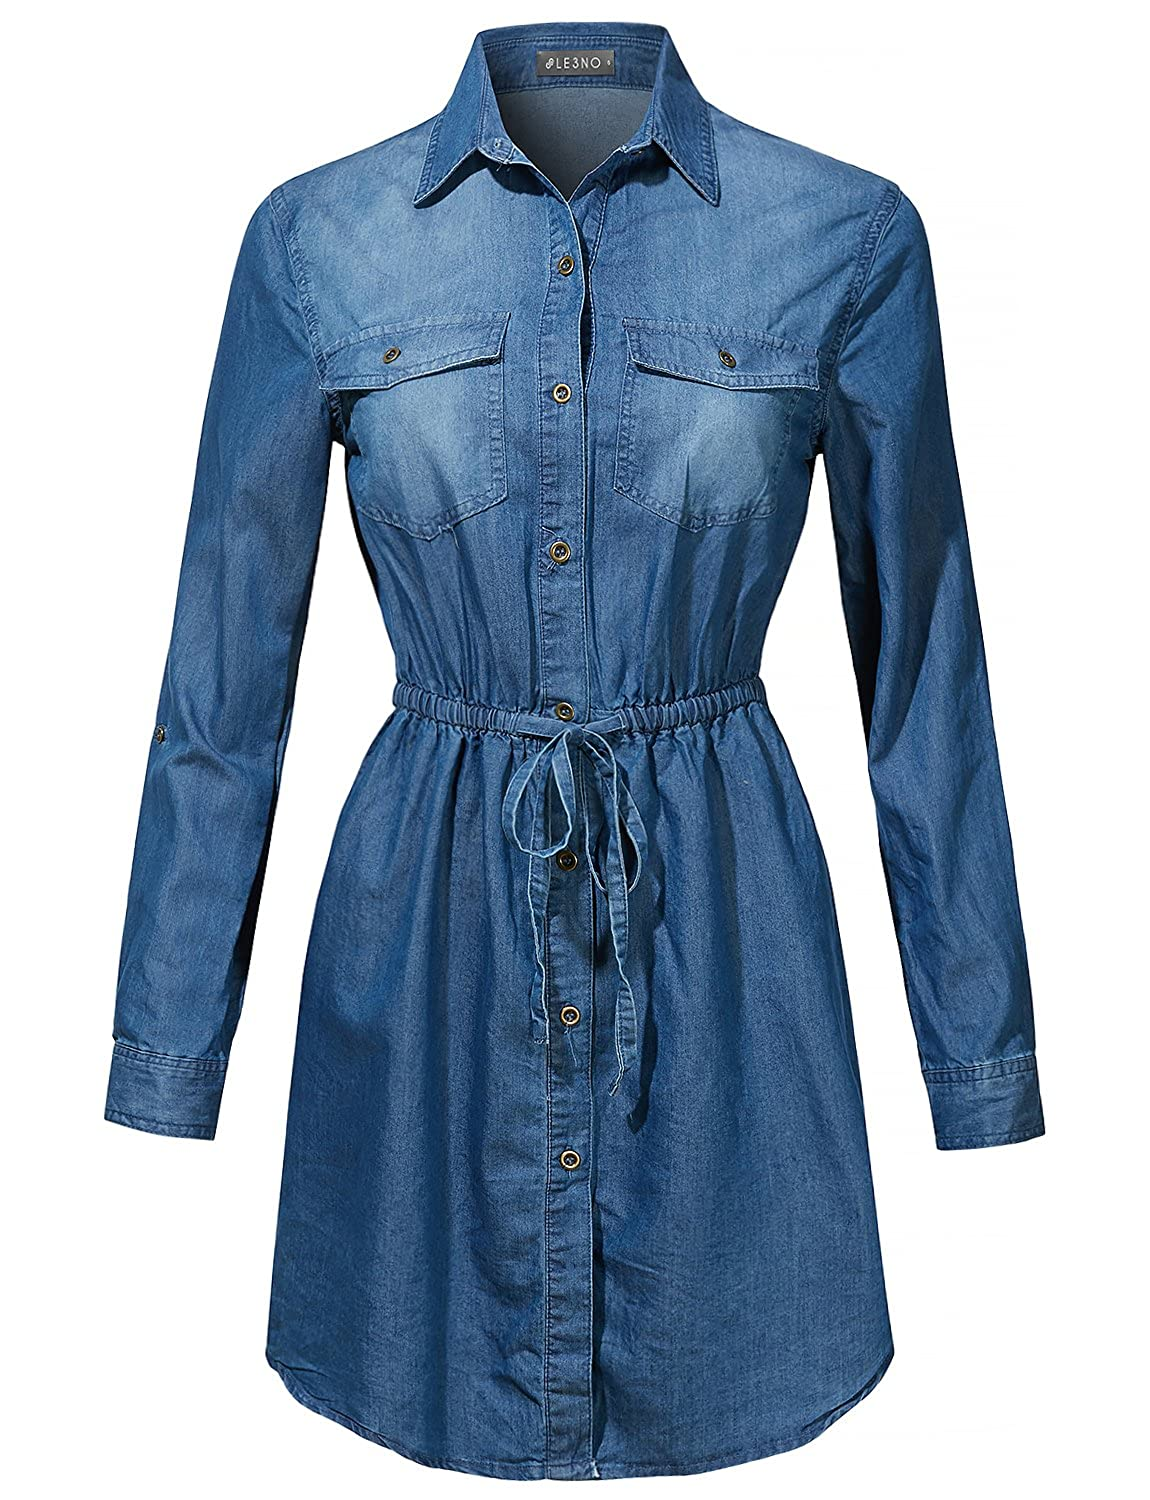 Le3no Womens Classic Loose Fit Chambray Jean Denim Shirt Dress With